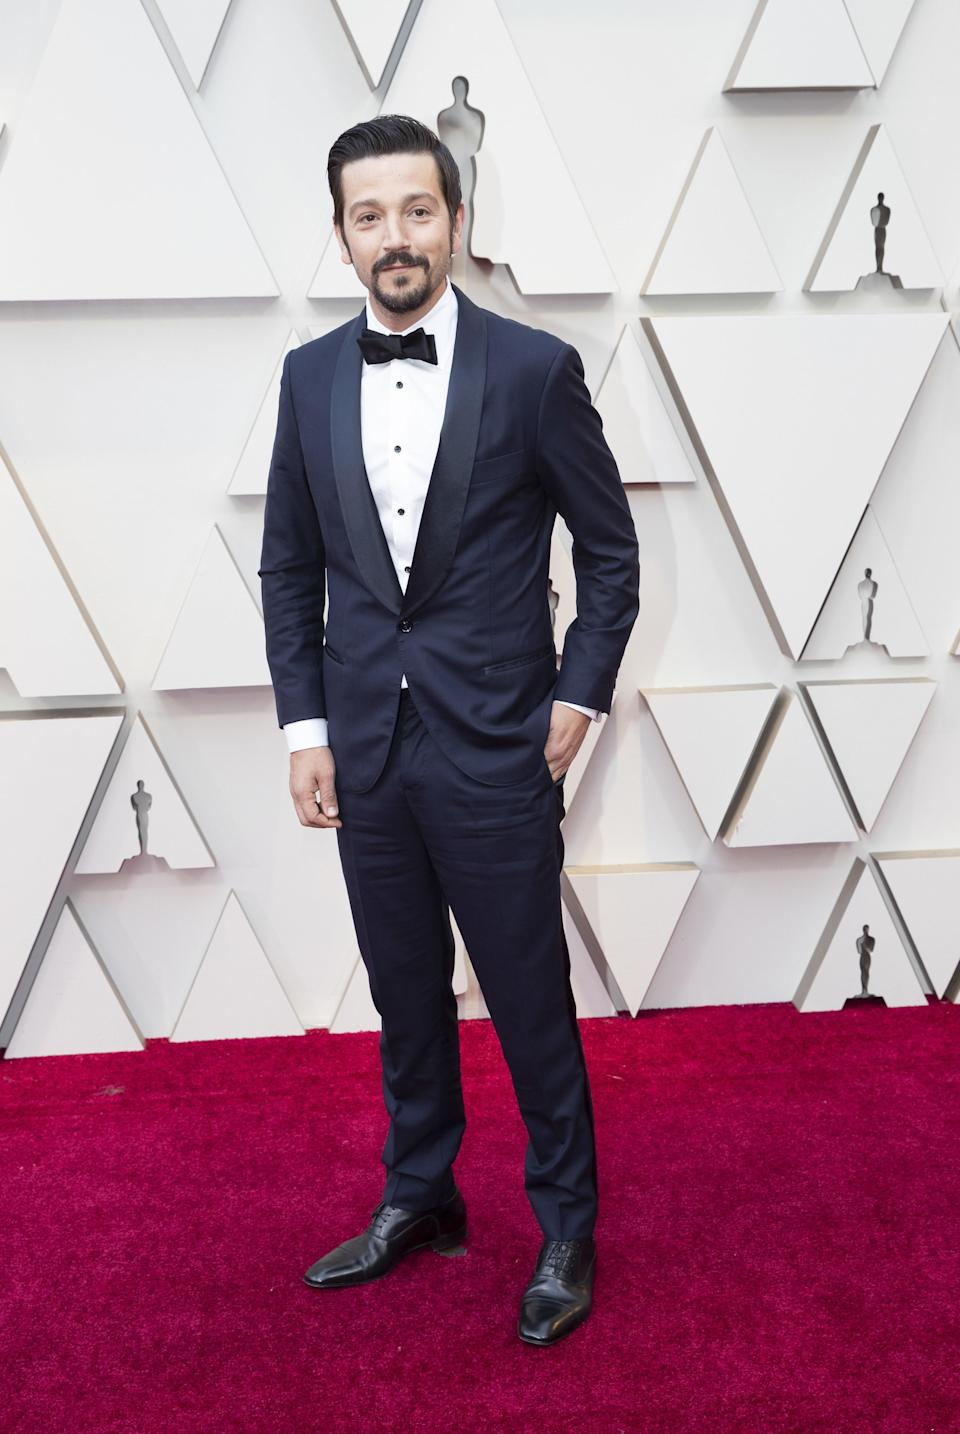 Diego Luna in Brunello Cucinelli and Christian Louboutin shoes